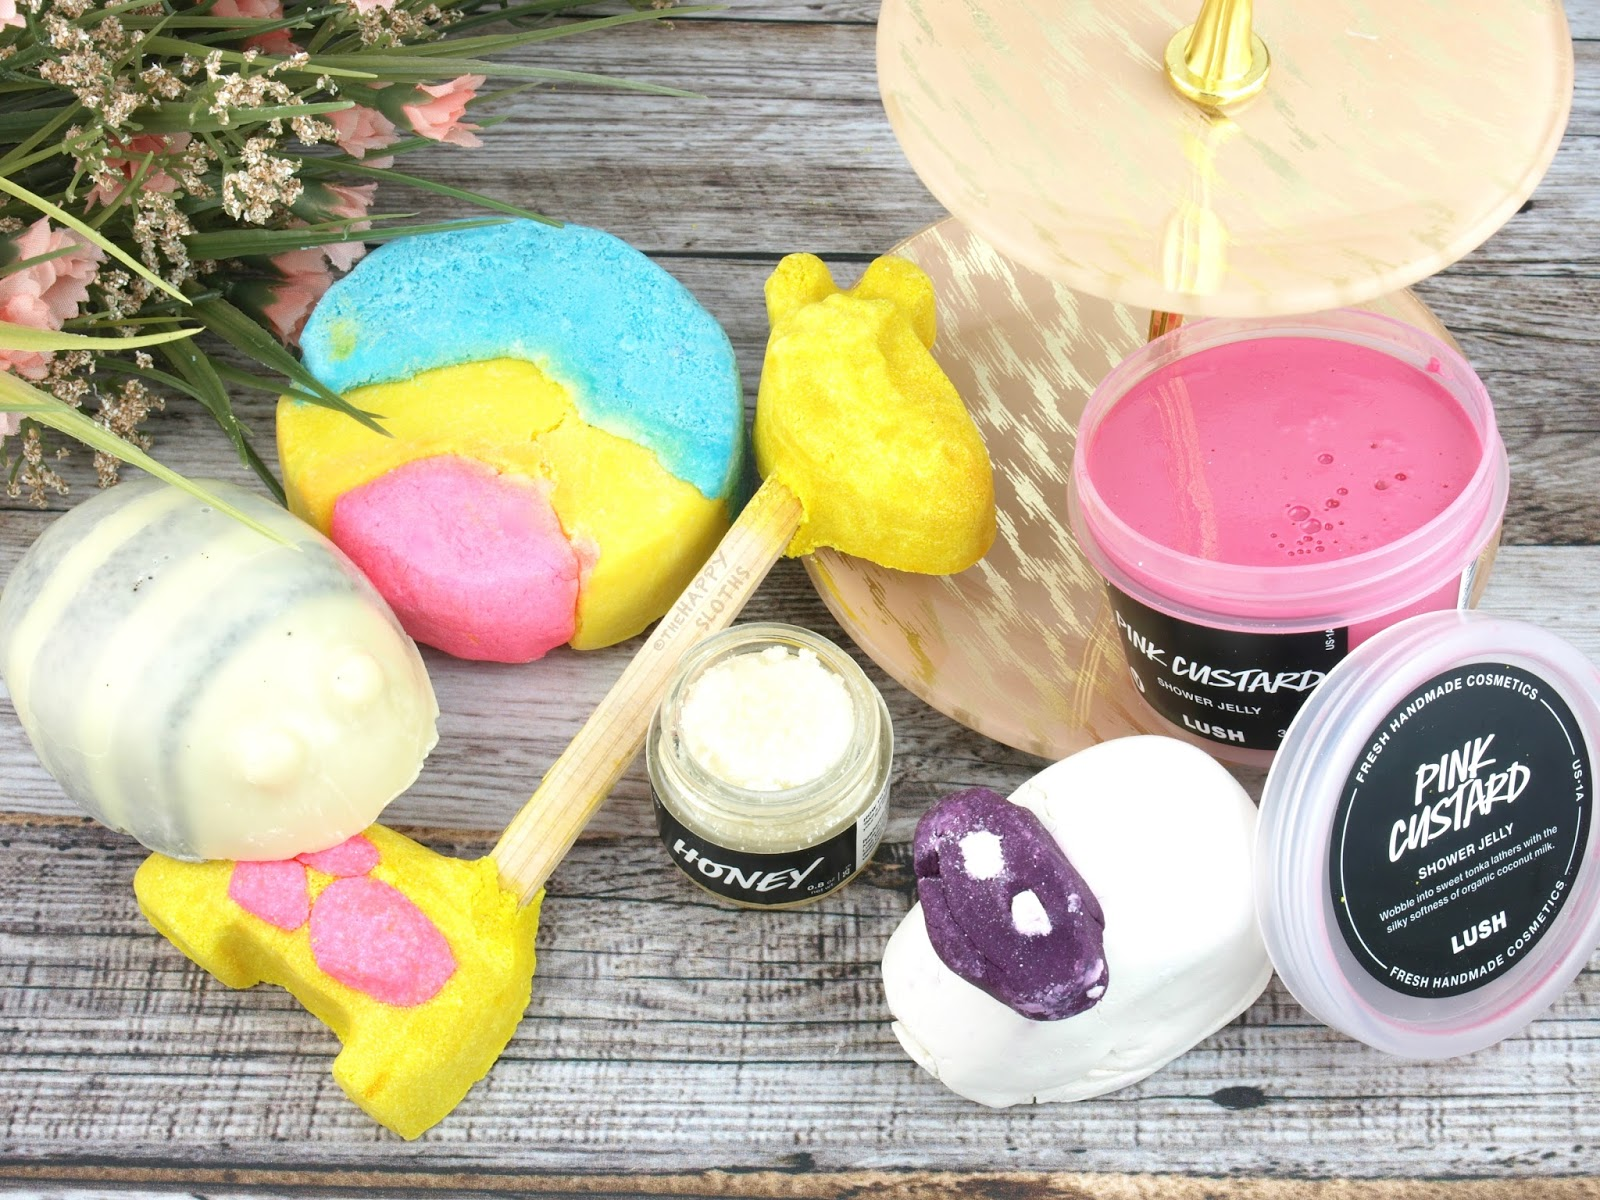 Lush Mother's Day 2017 Gift Guide